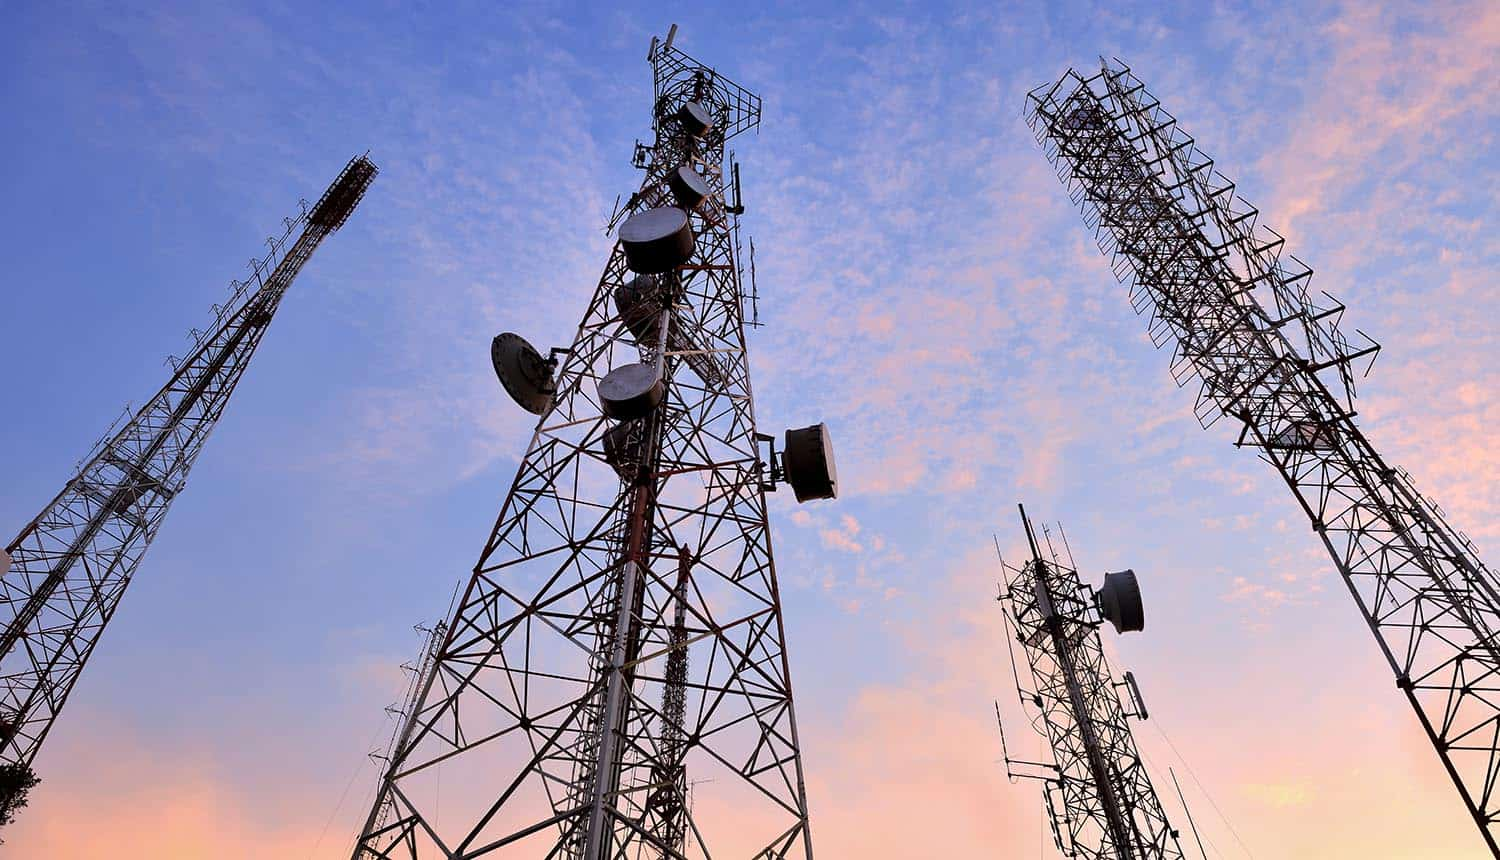 Picture of telecommunication tower showing cyber espionage by Chinese hackers through data breach at global telecoms